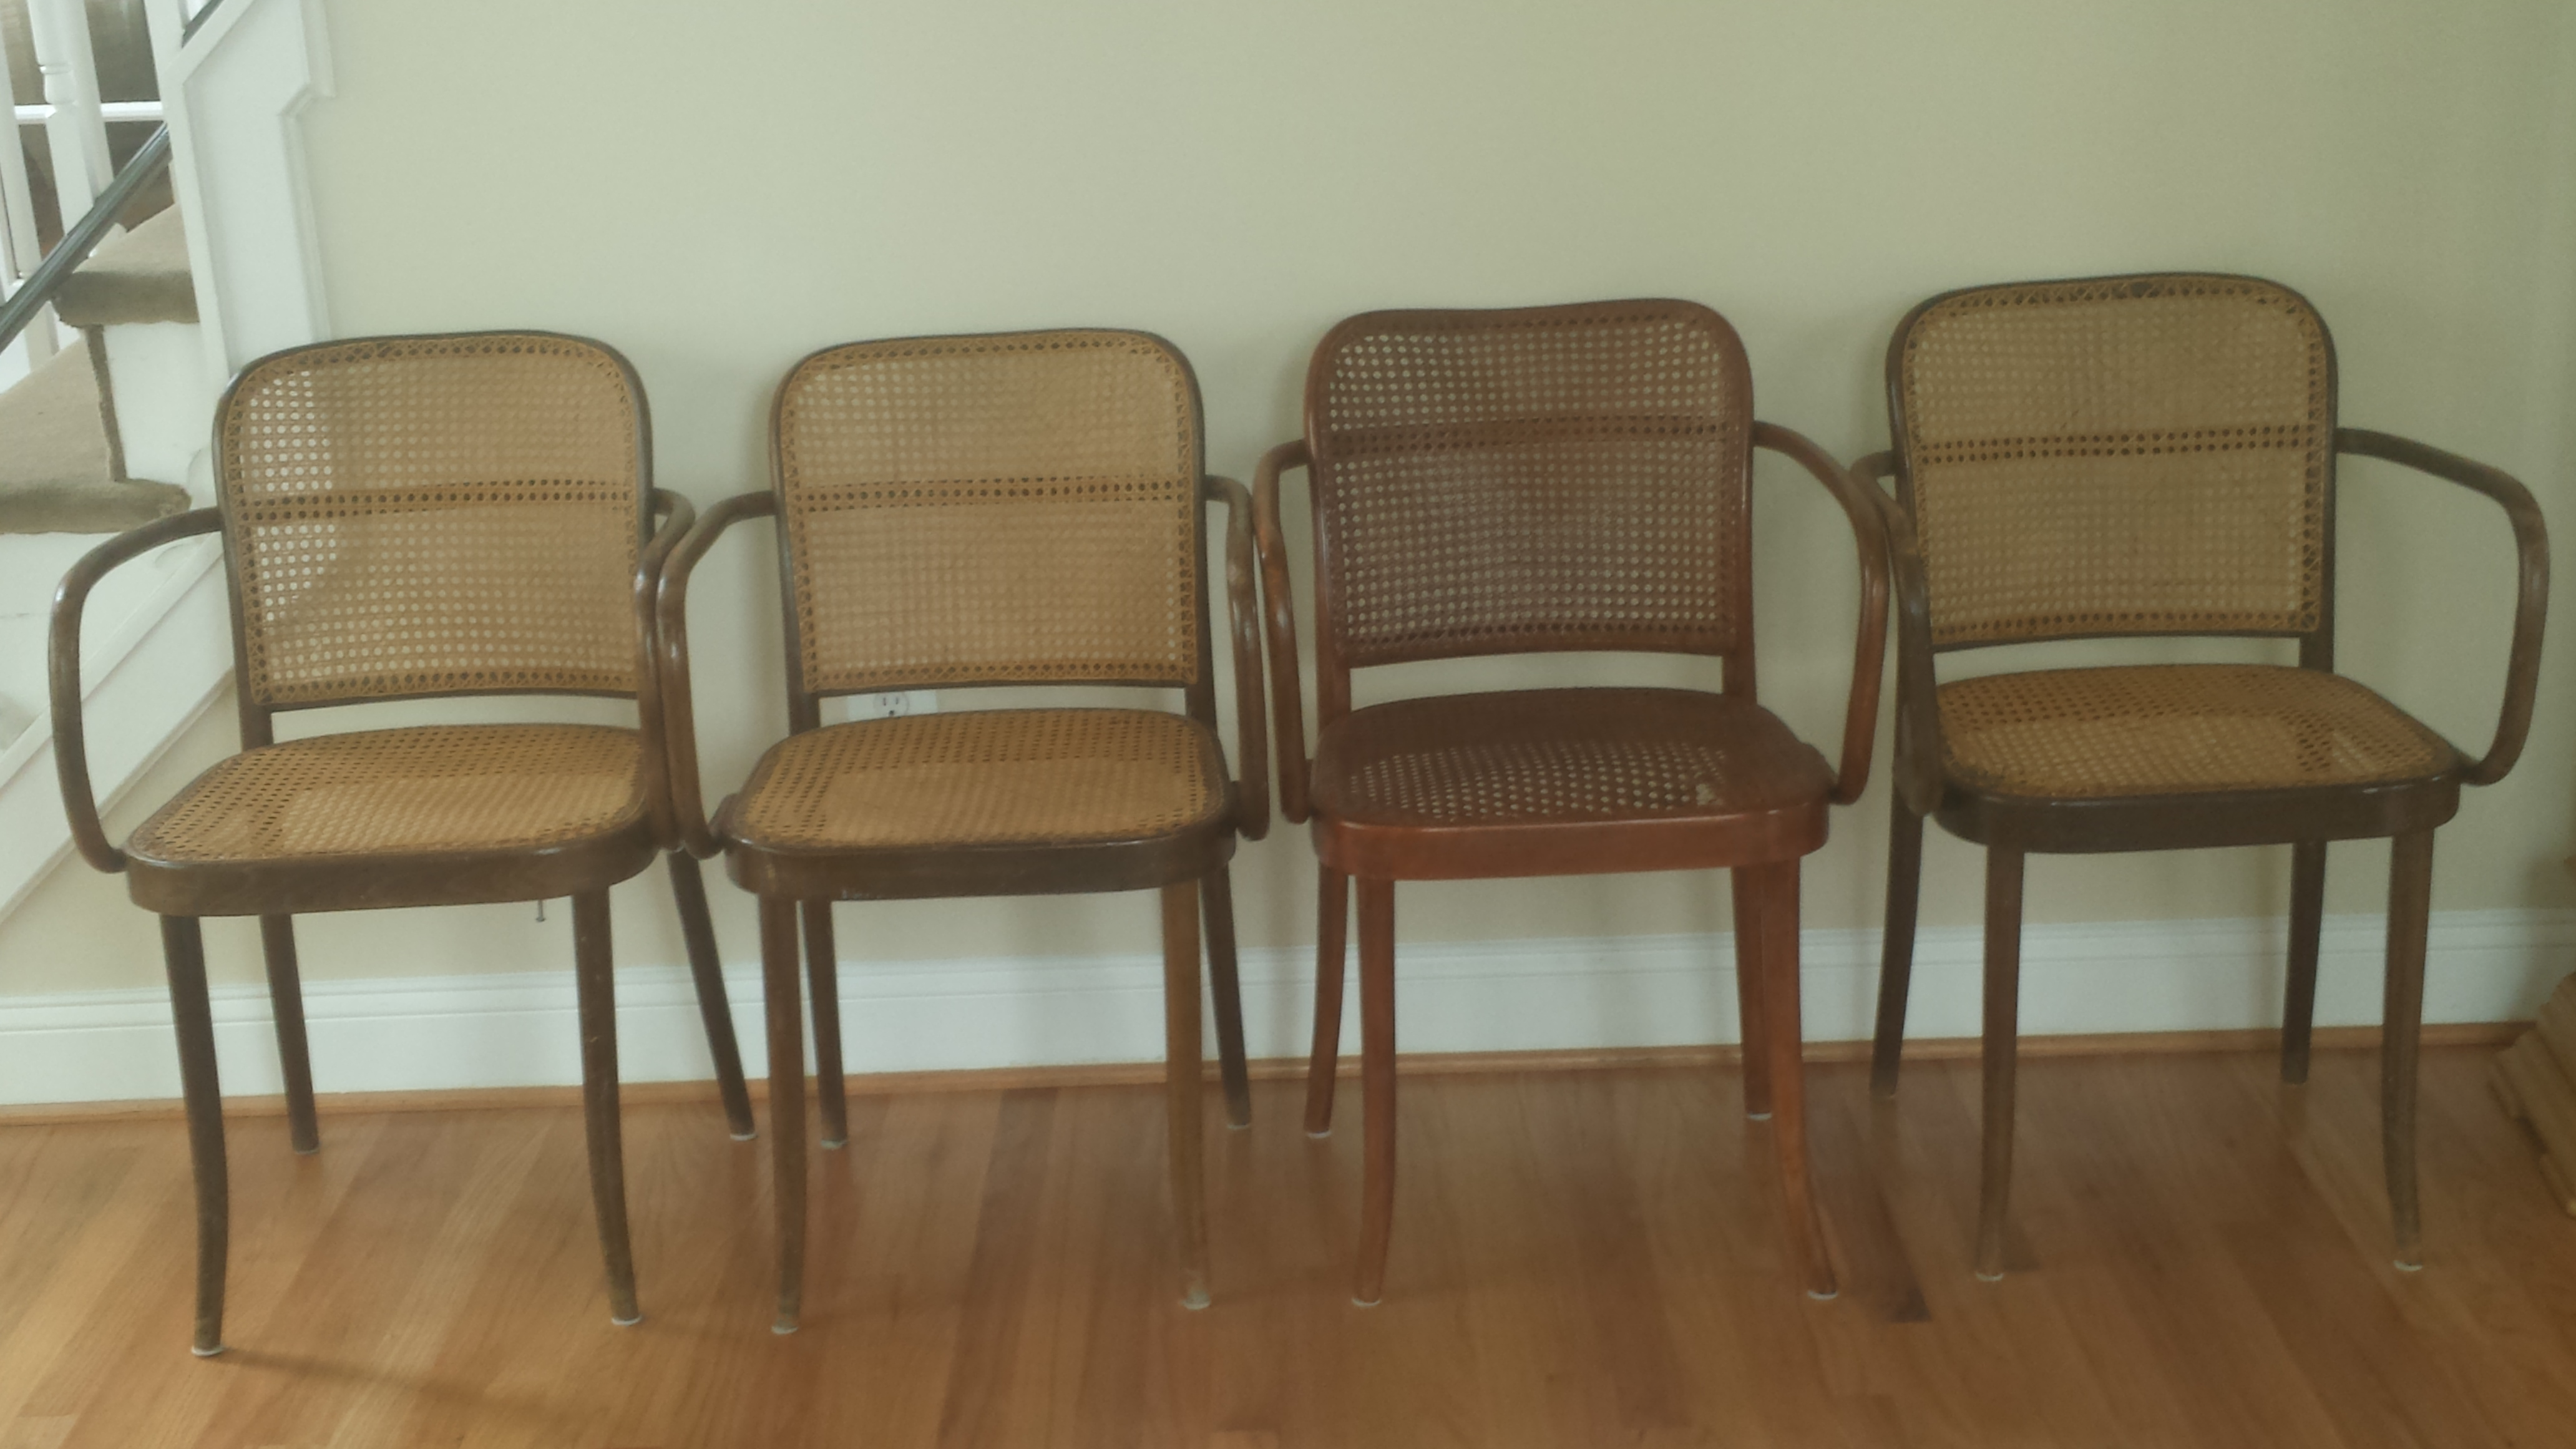 Ordinaire Modern Vintage Stendig Thonet Bentwood Cane Chairs   Set Of 4 For Sale    Image 3